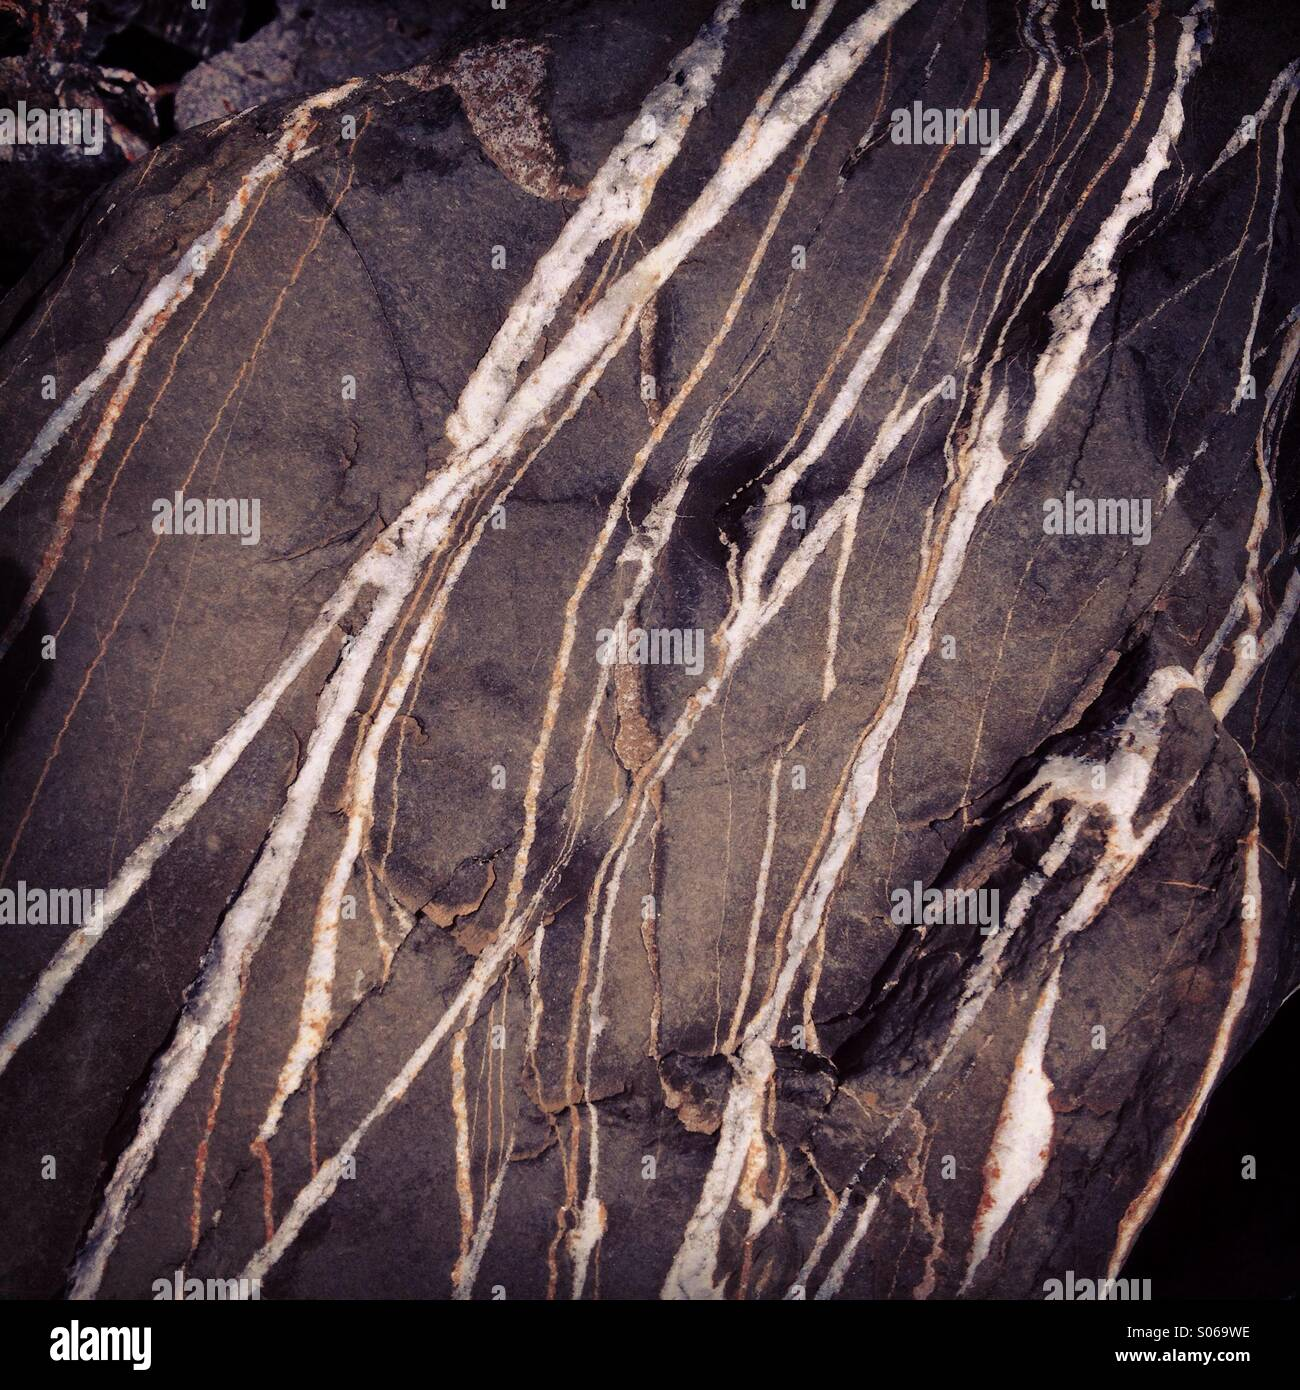 Striped rock formation, Ecosse Photo Stock